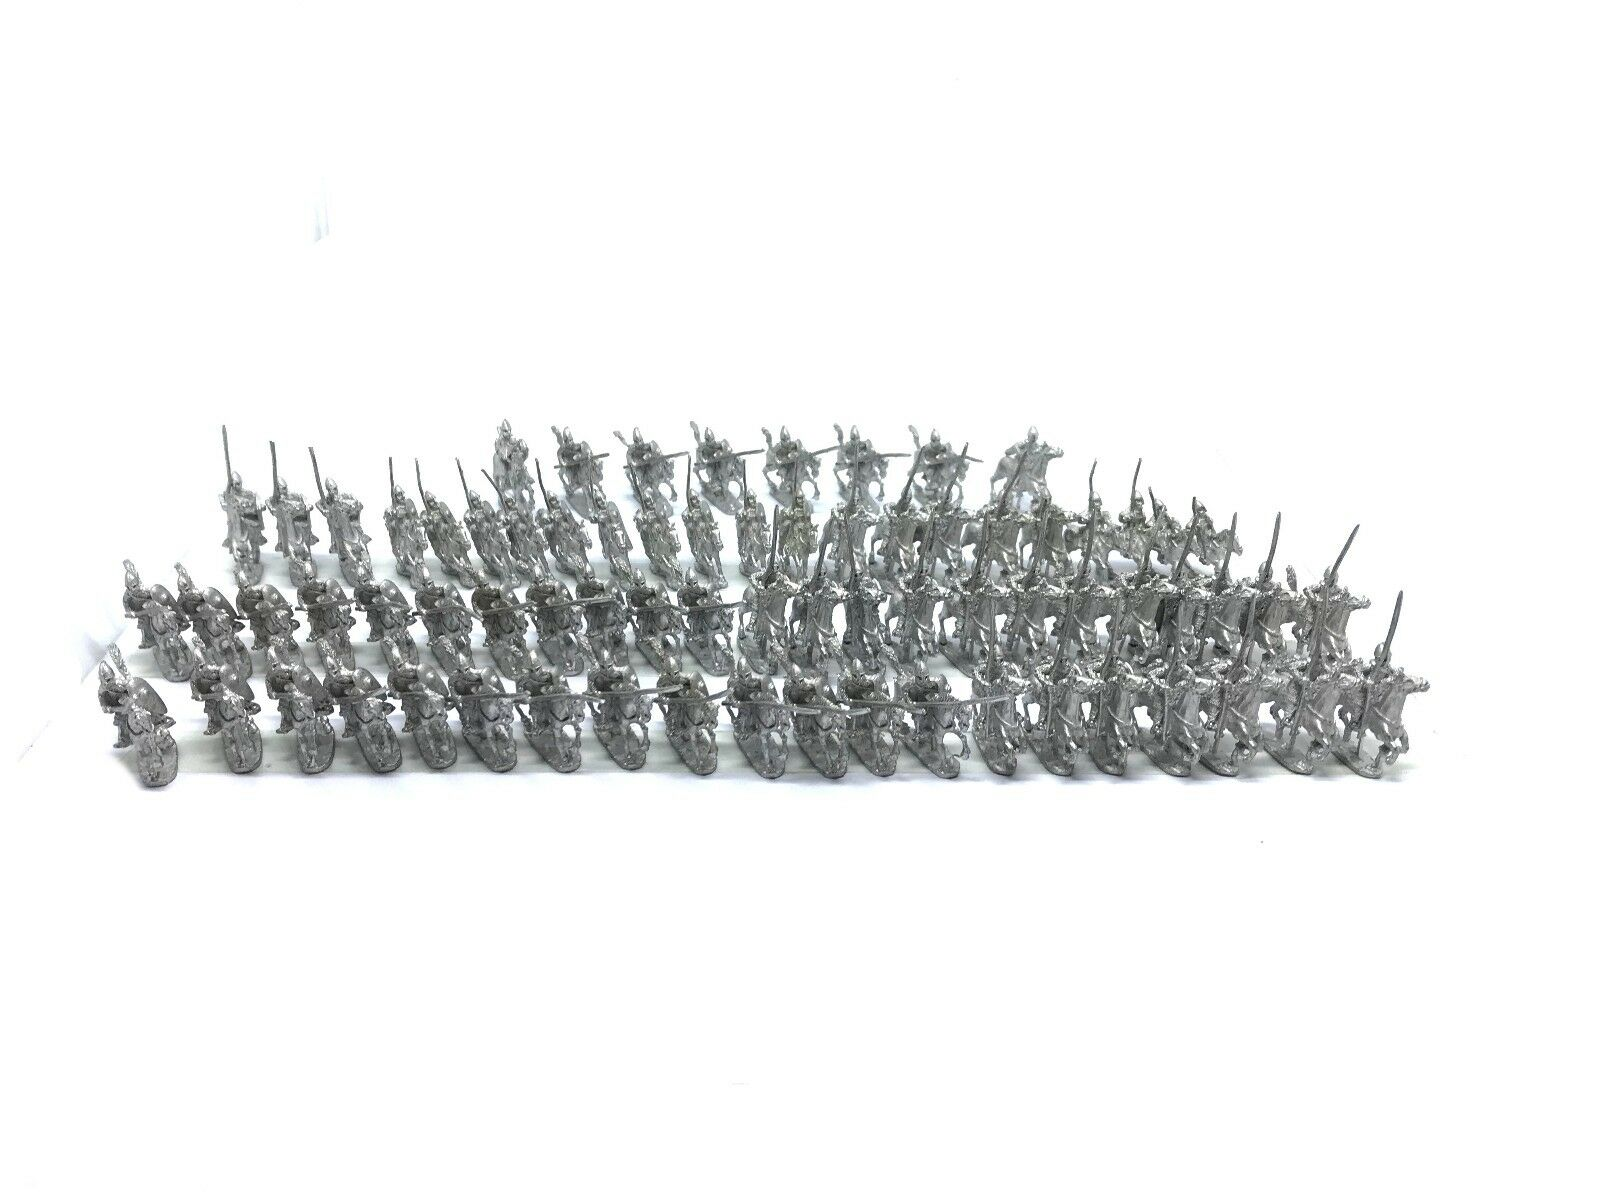 Museum - Norman Knights - 15mm